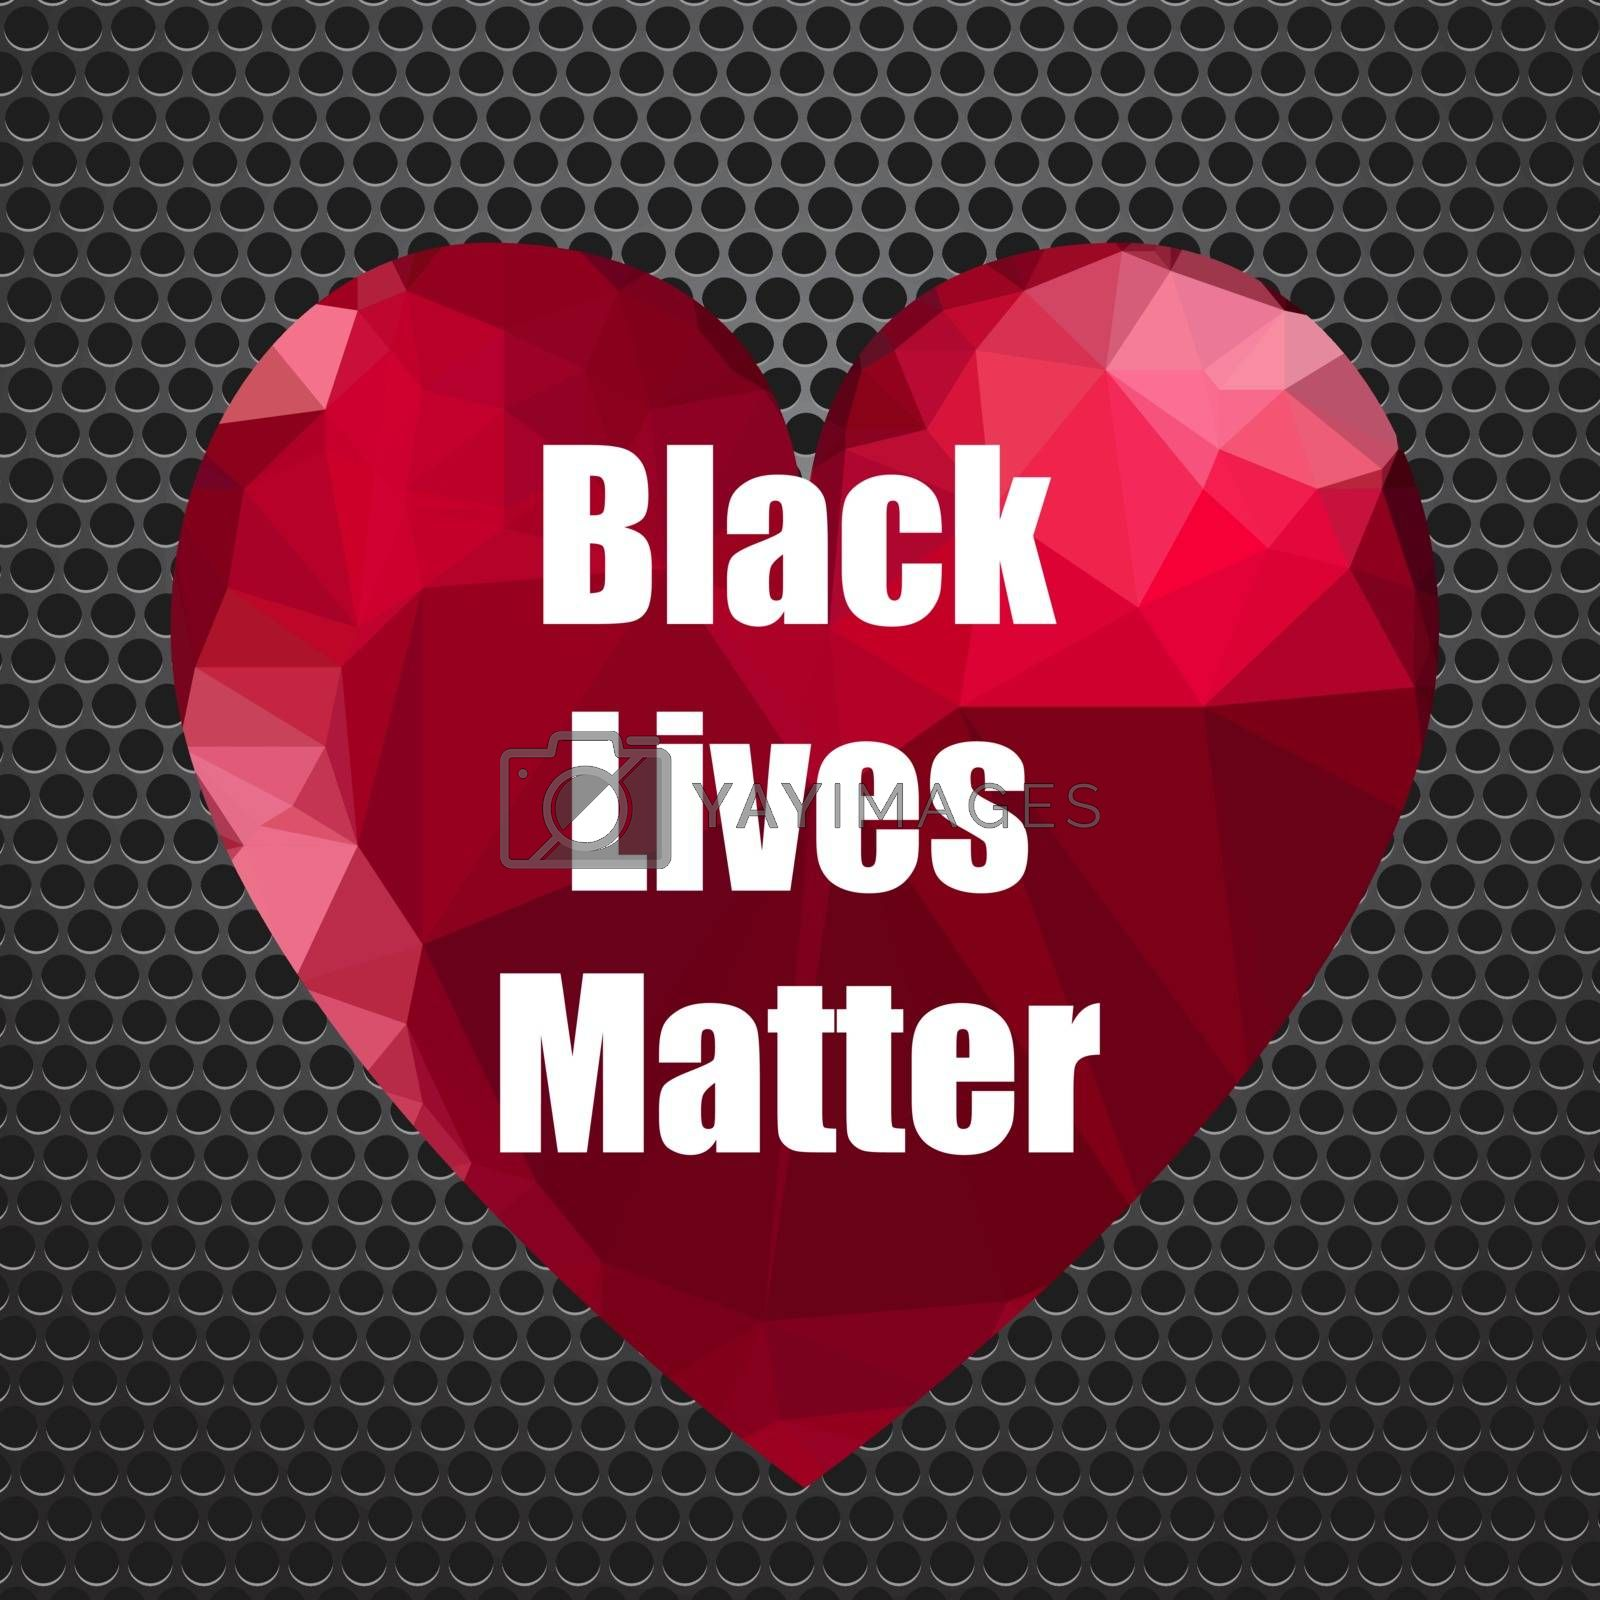 Black Lives Matter Banner with Red Heart for Protest on Perforated Background.